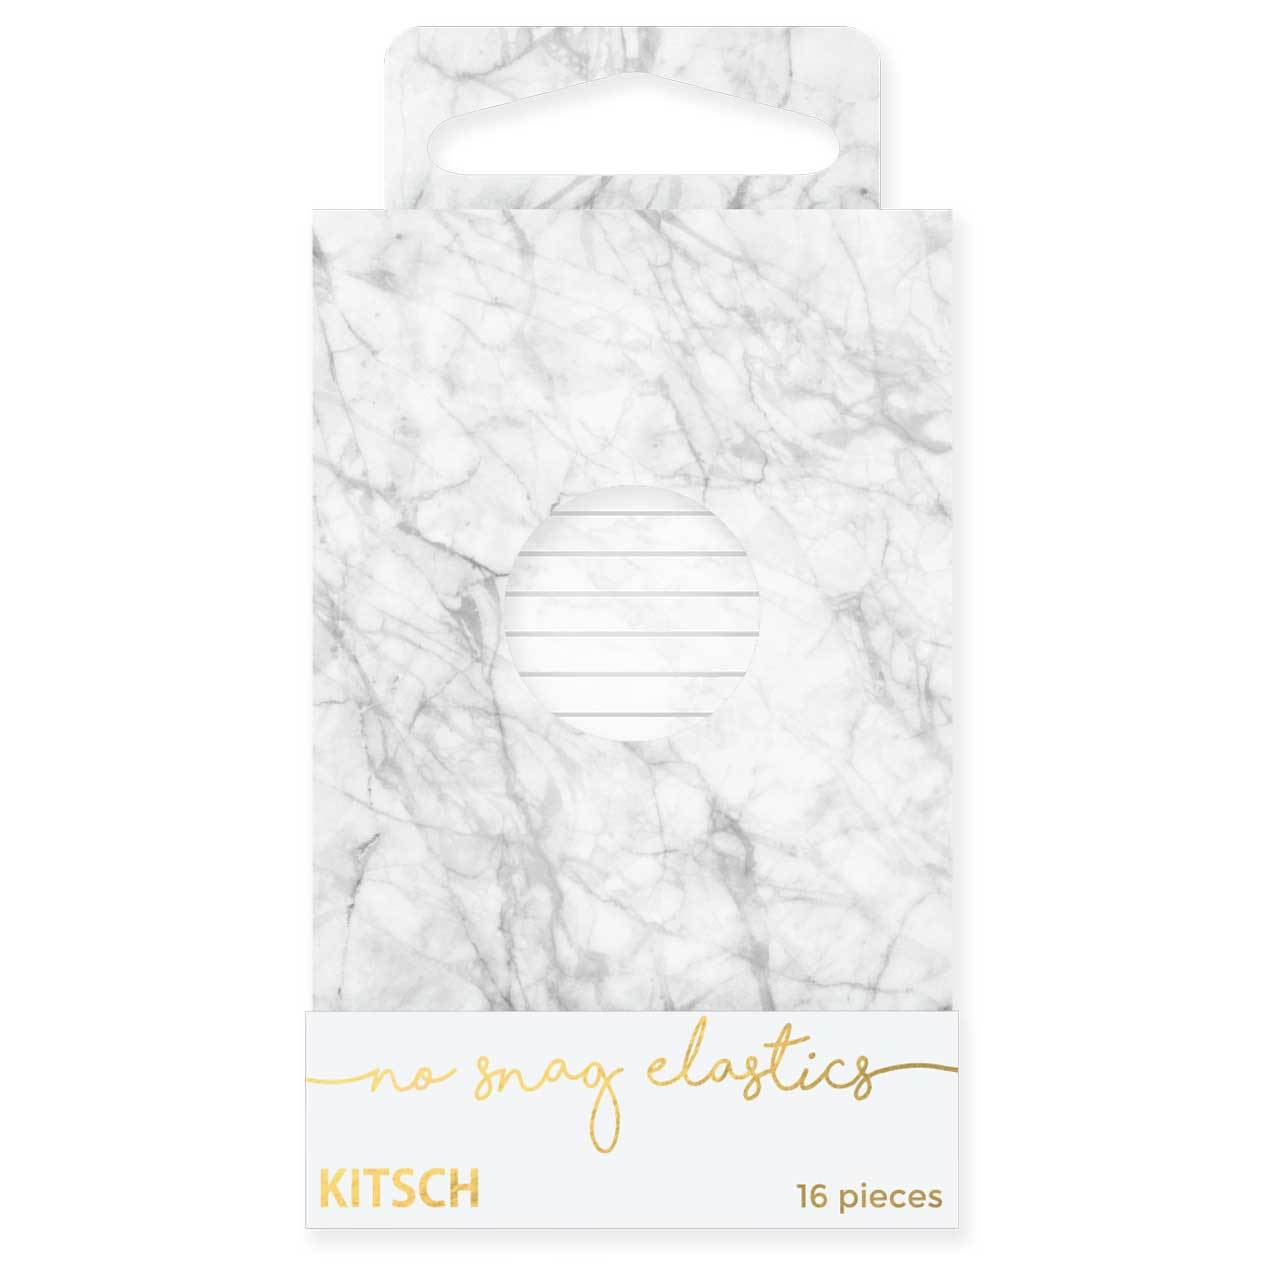 Matchbook Elastics - White Marble